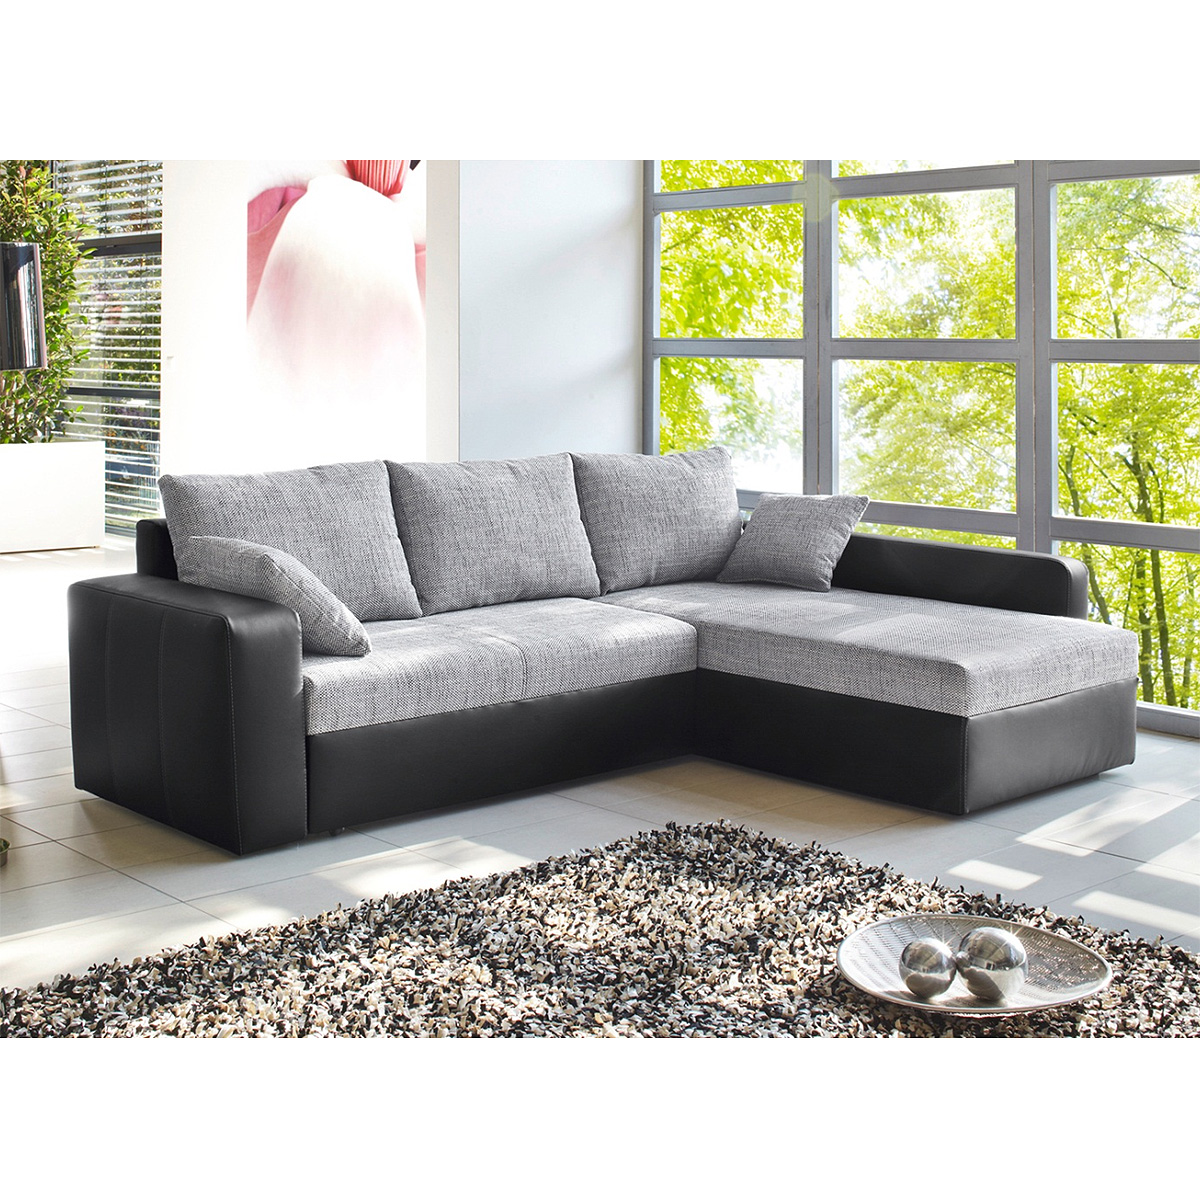 ecksofa viper sofa wohnlandschaft in schwarz grau wei braun auswahl ebay. Black Bedroom Furniture Sets. Home Design Ideas